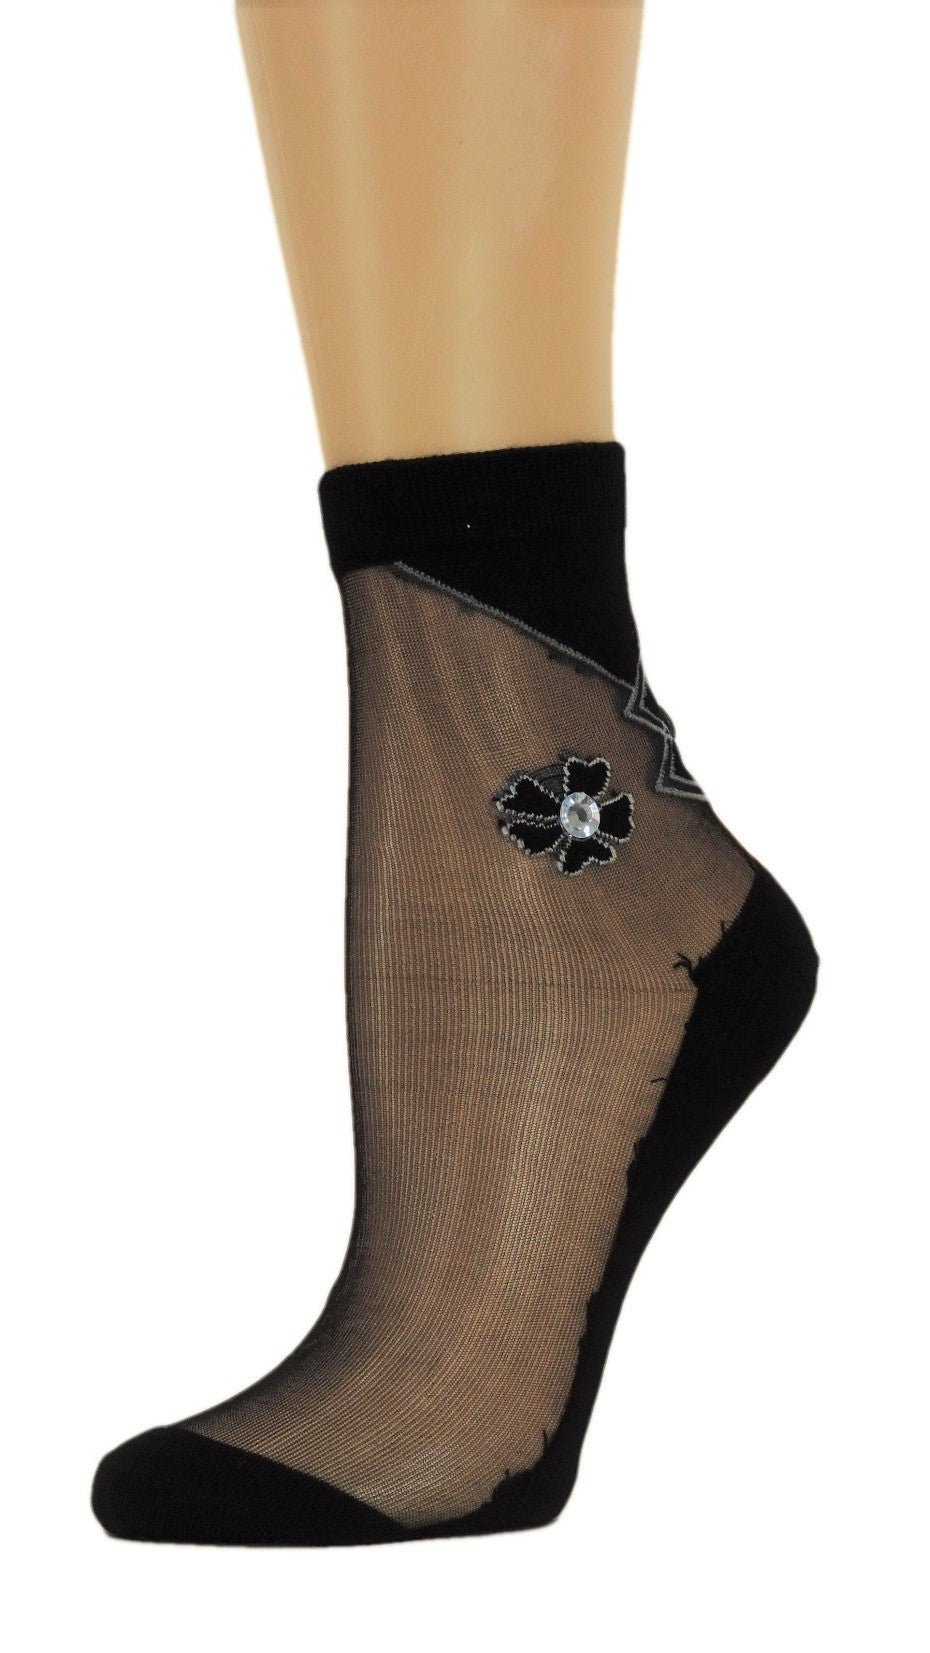 Five Leaf Petal Custom Sheer Socks with crystals - Global Trendz Fashion®